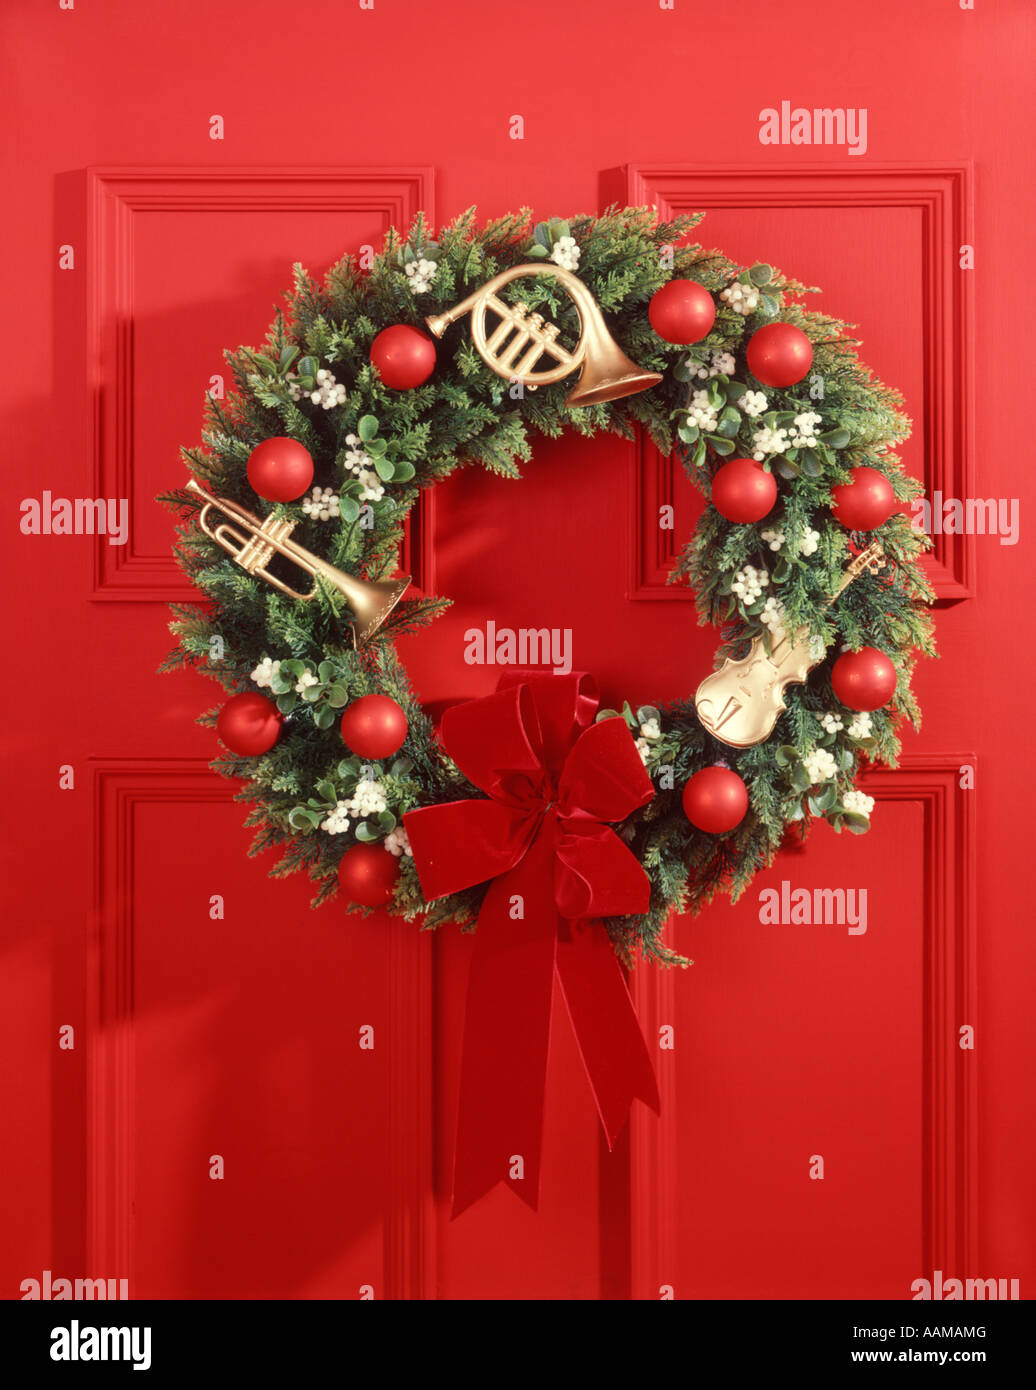 Christmas Wreath On Red Door Stock Photo 12660495 Alamy